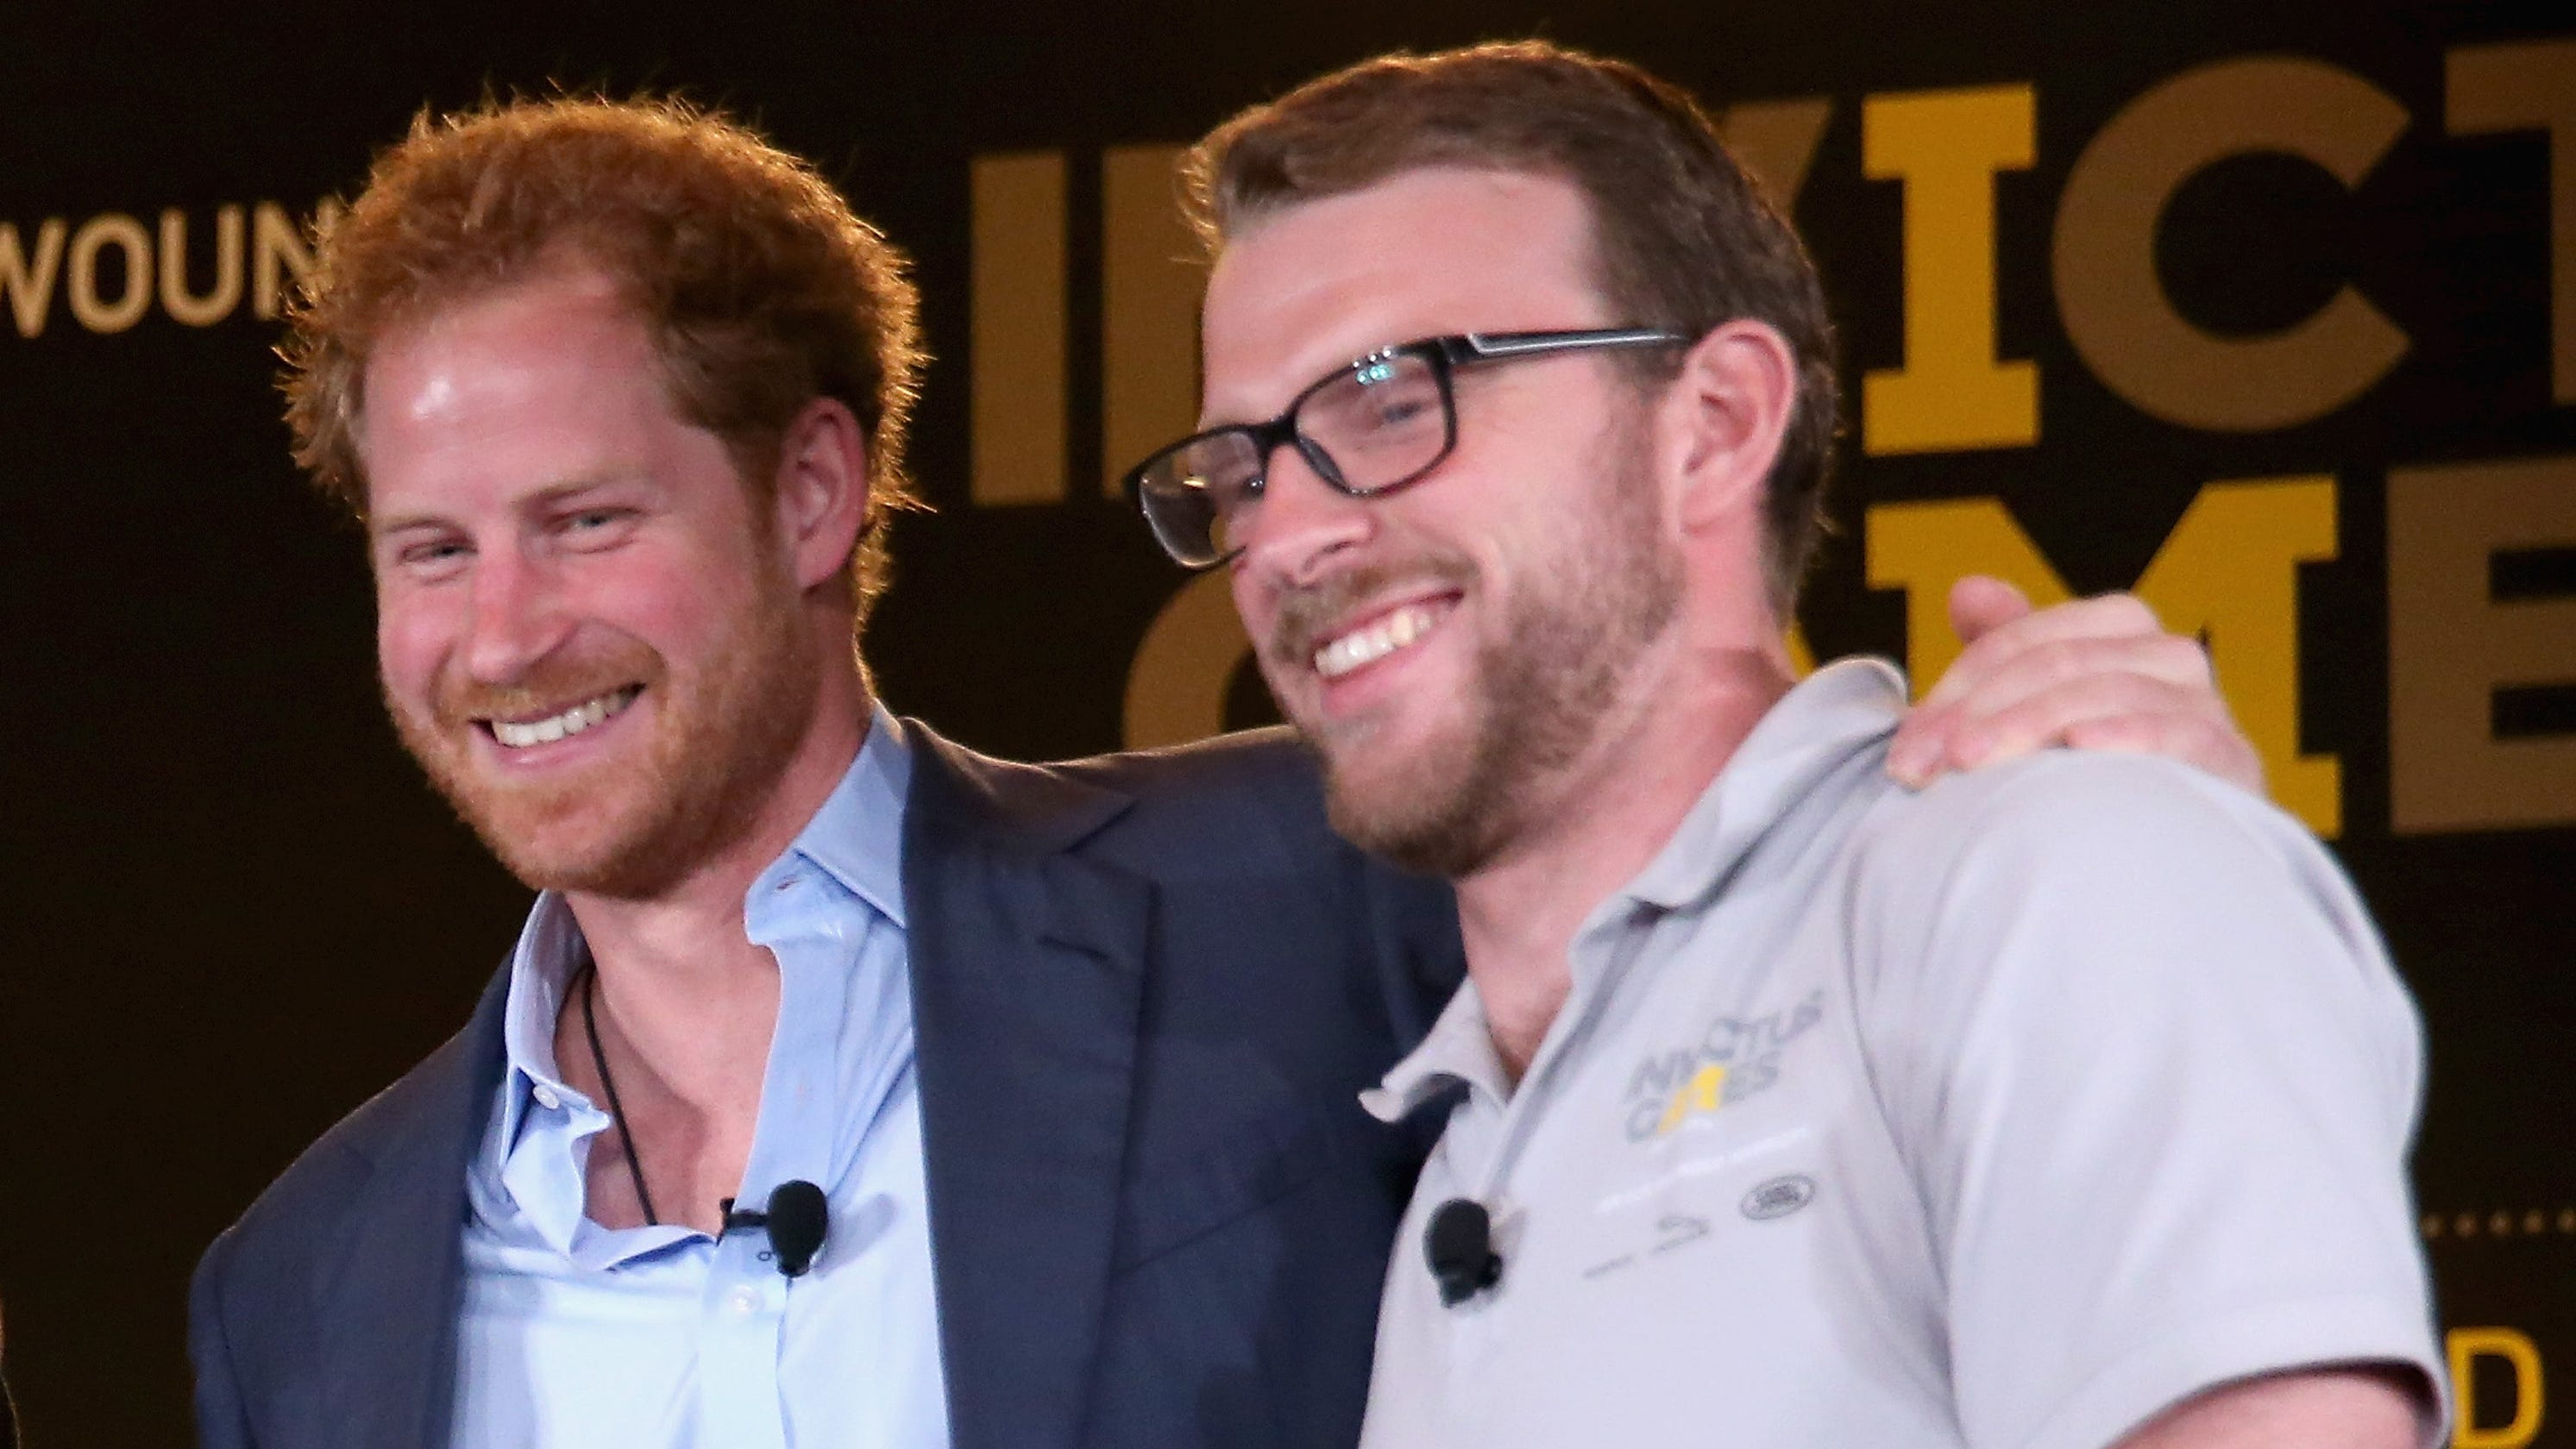 Surprise! Prince Harry pops up on 'Strictly Come Dancing' to encourage pal J.J. Chalmers – USA TODAY